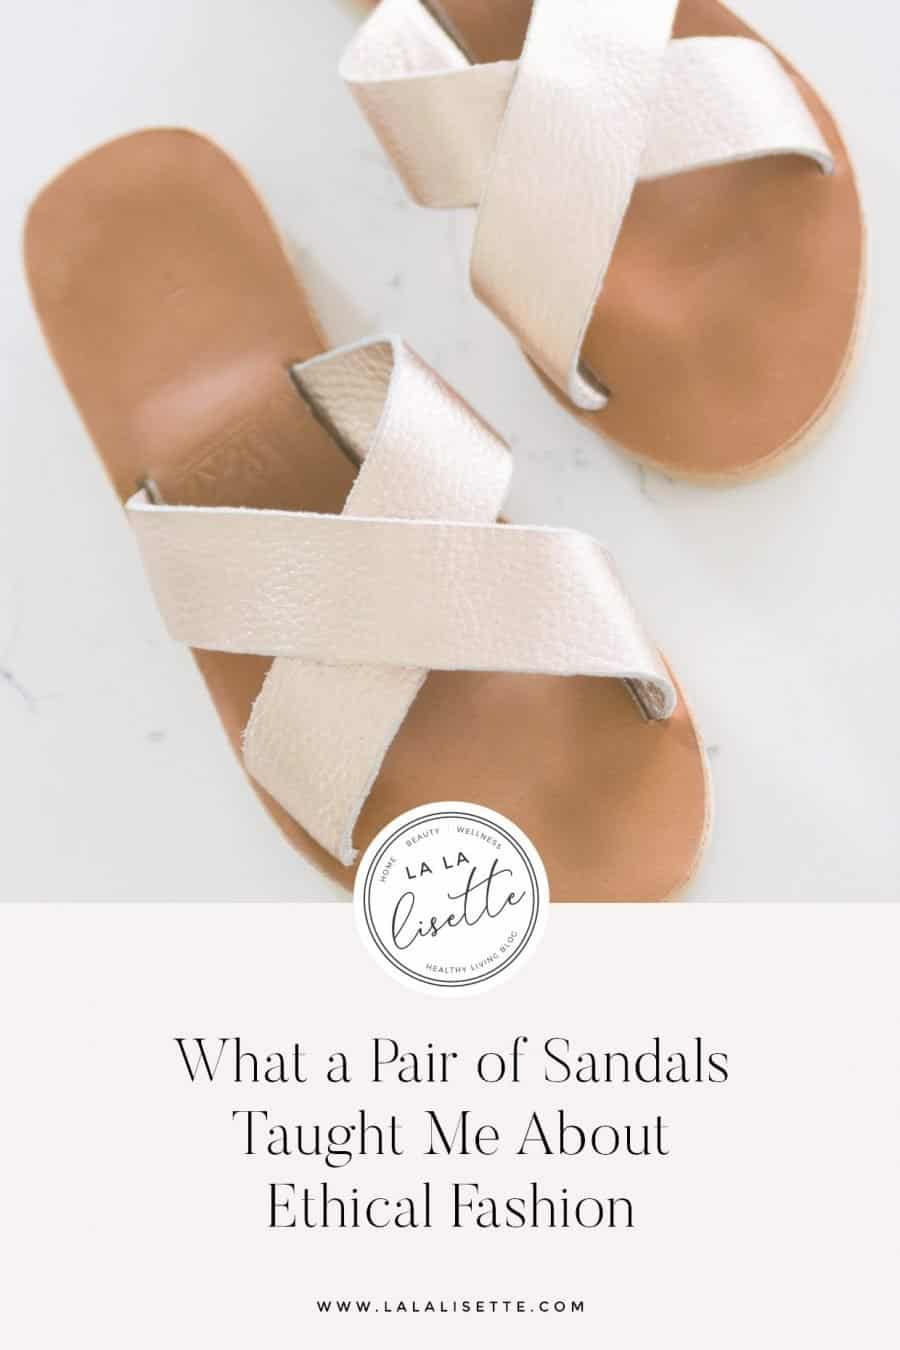 graphic with text: What a Pair of Sandals Taught Me about Ethical Fashion